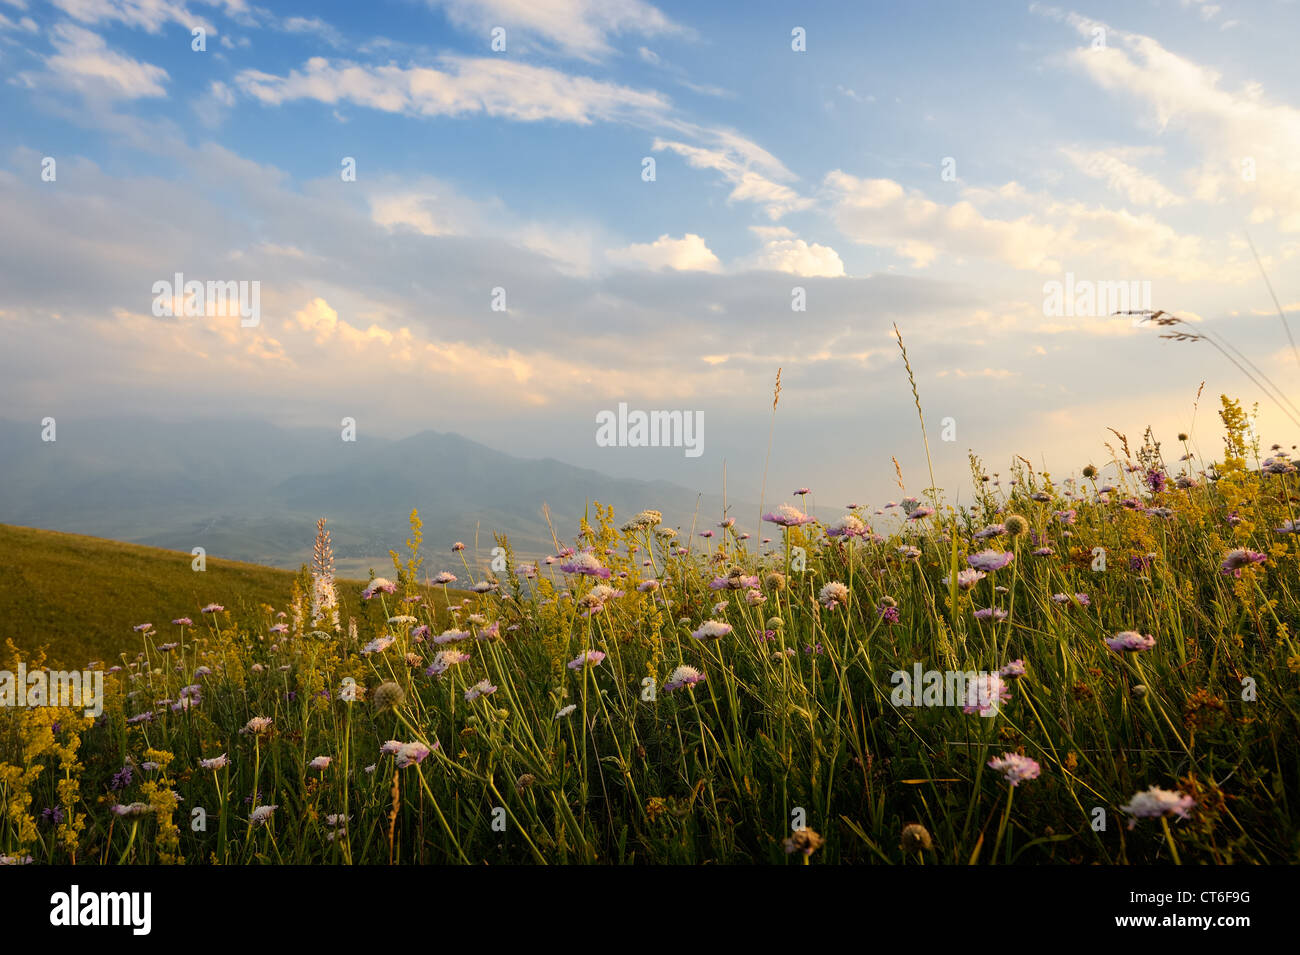 Meadow flowers at sunset. - Stock Image